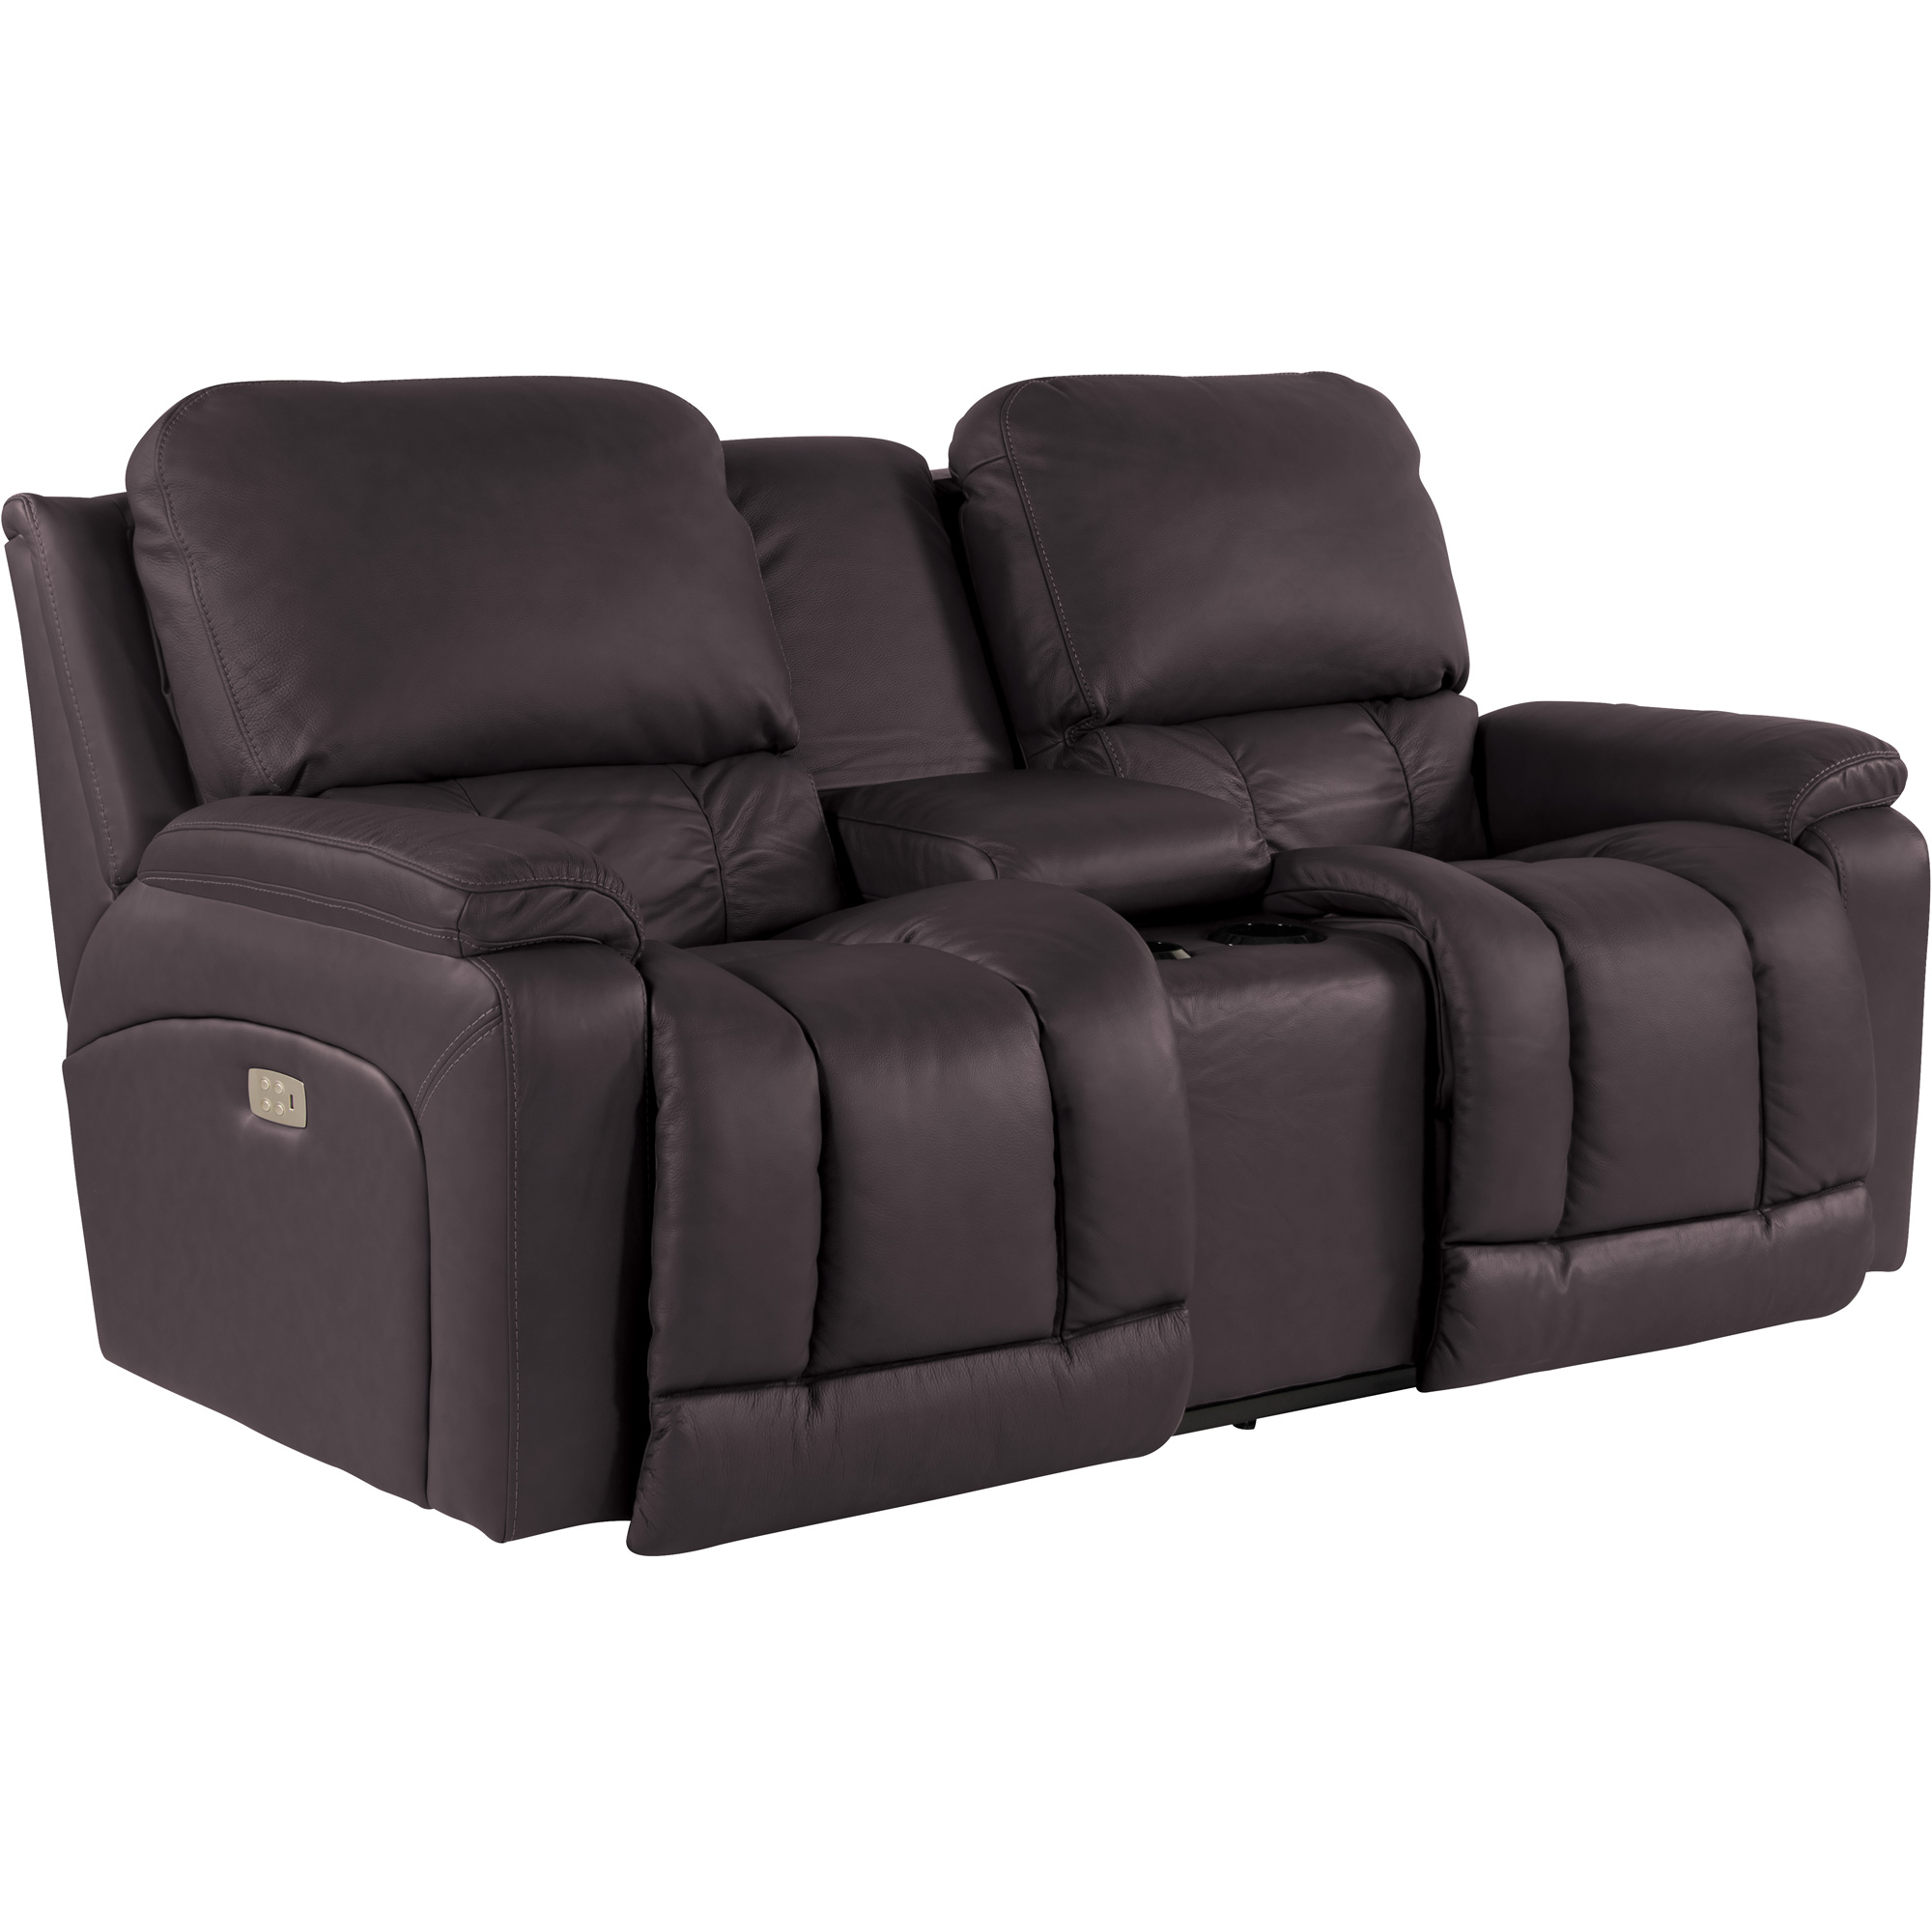 La-Z-Boy | Greyson Chocolate Power Plus Reclining Console Loveseat Sofa